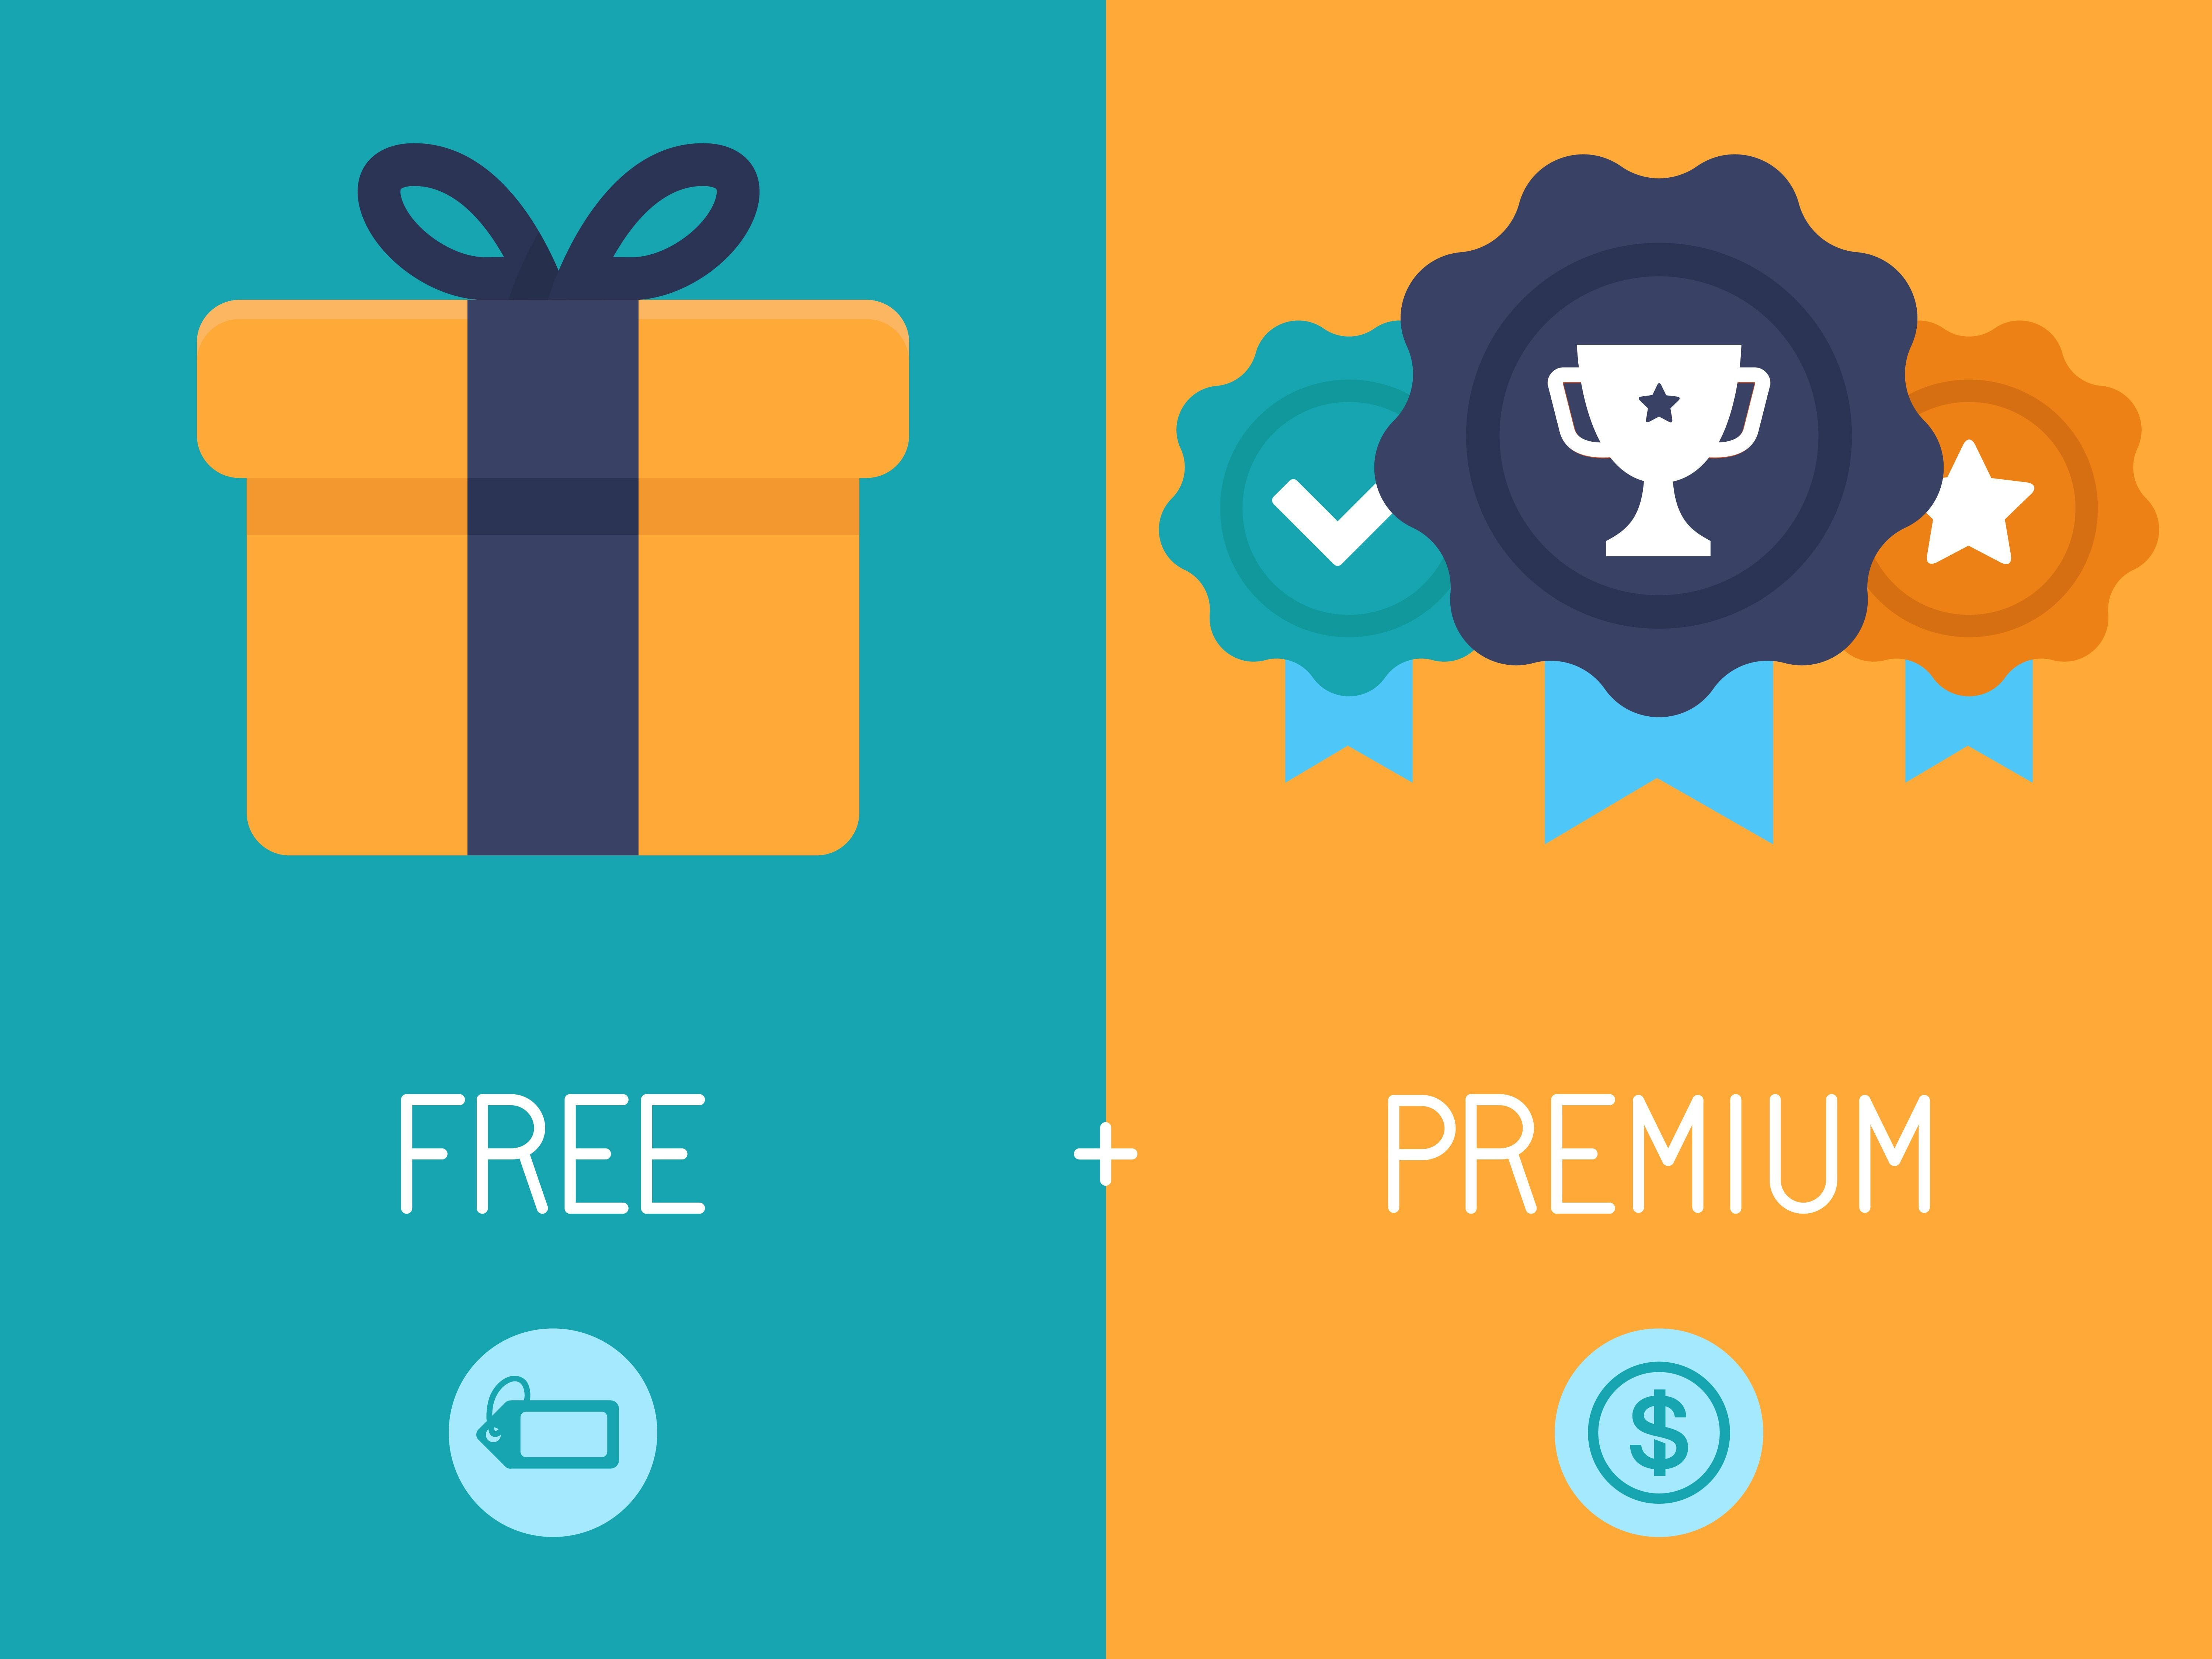 The Freemium Model: What is it and how can you use it effectively?